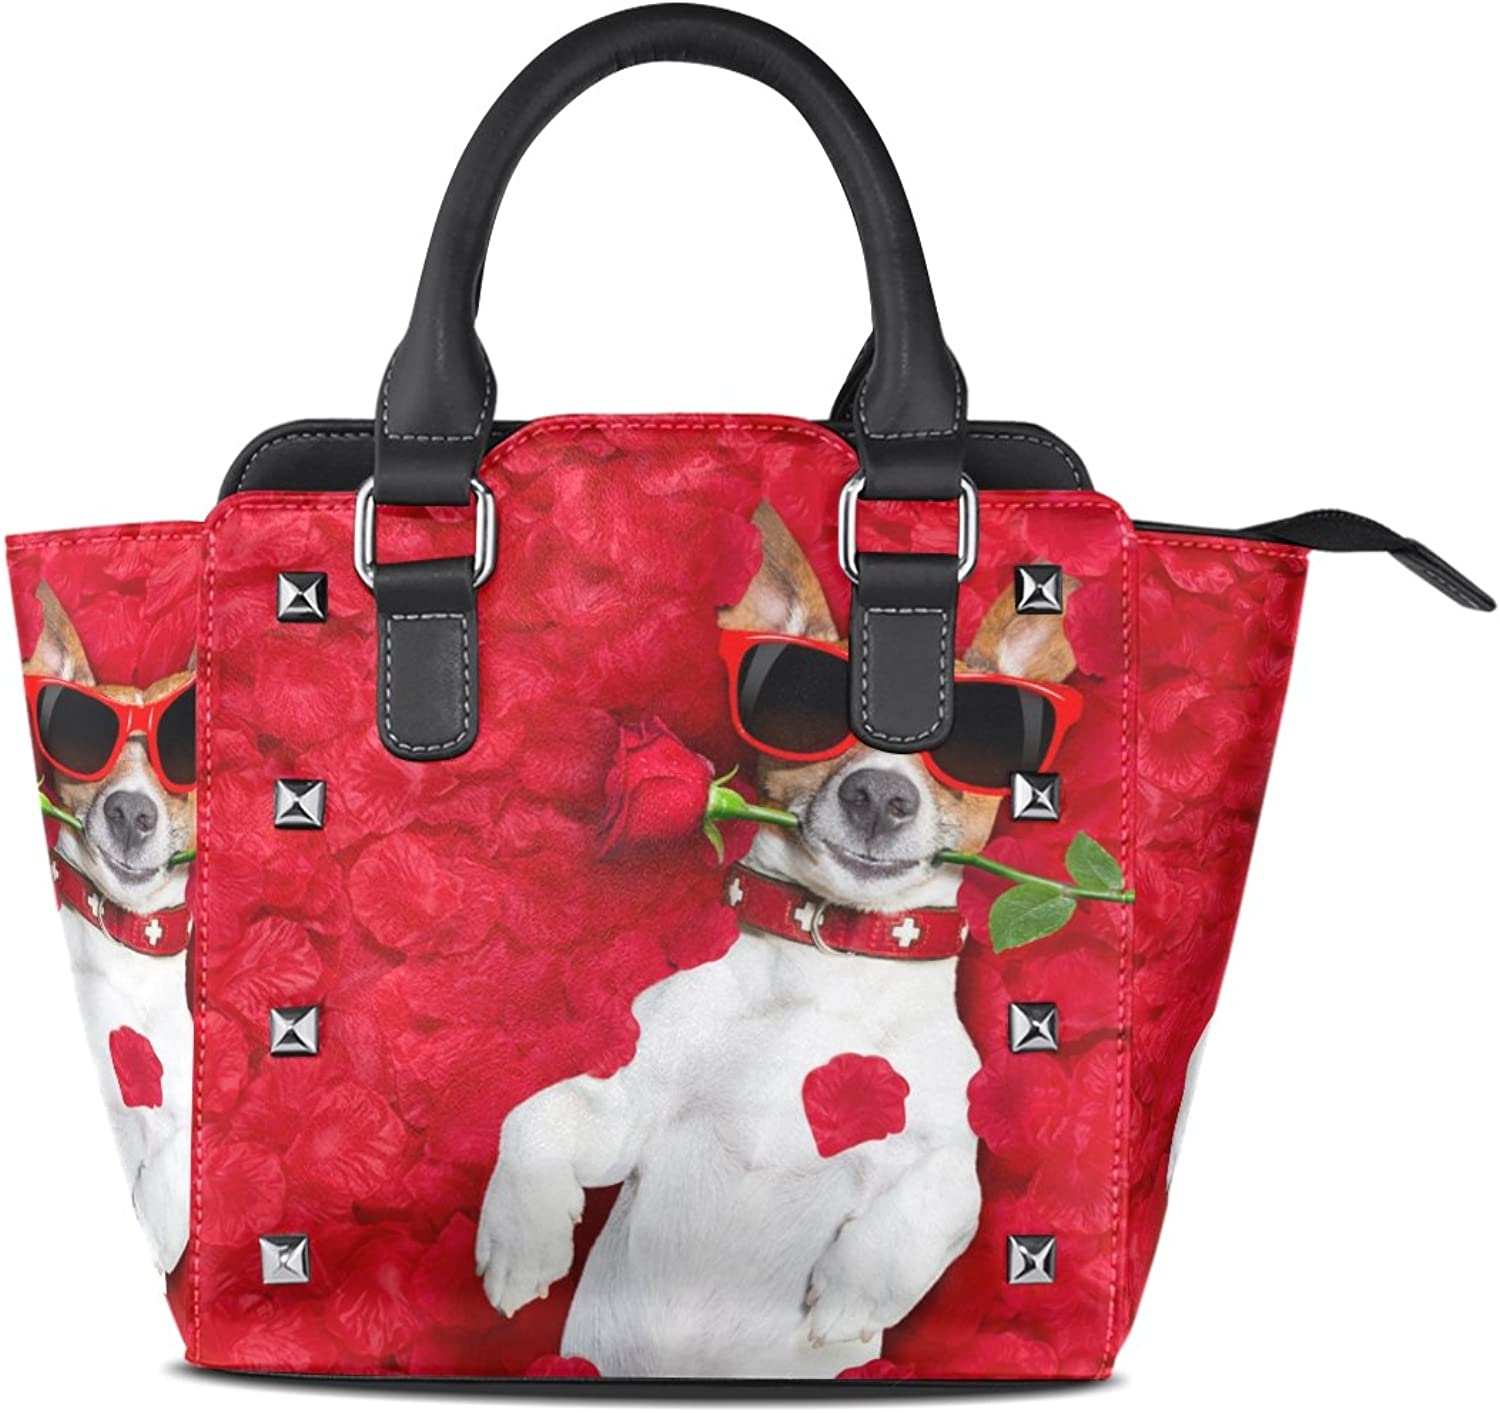 My Little Nest Women's Top Handle Satchel Handbag Jack Russell Dog with pink in Mouth Ladies PU Leather Shoulder Bag Crossbody Bag